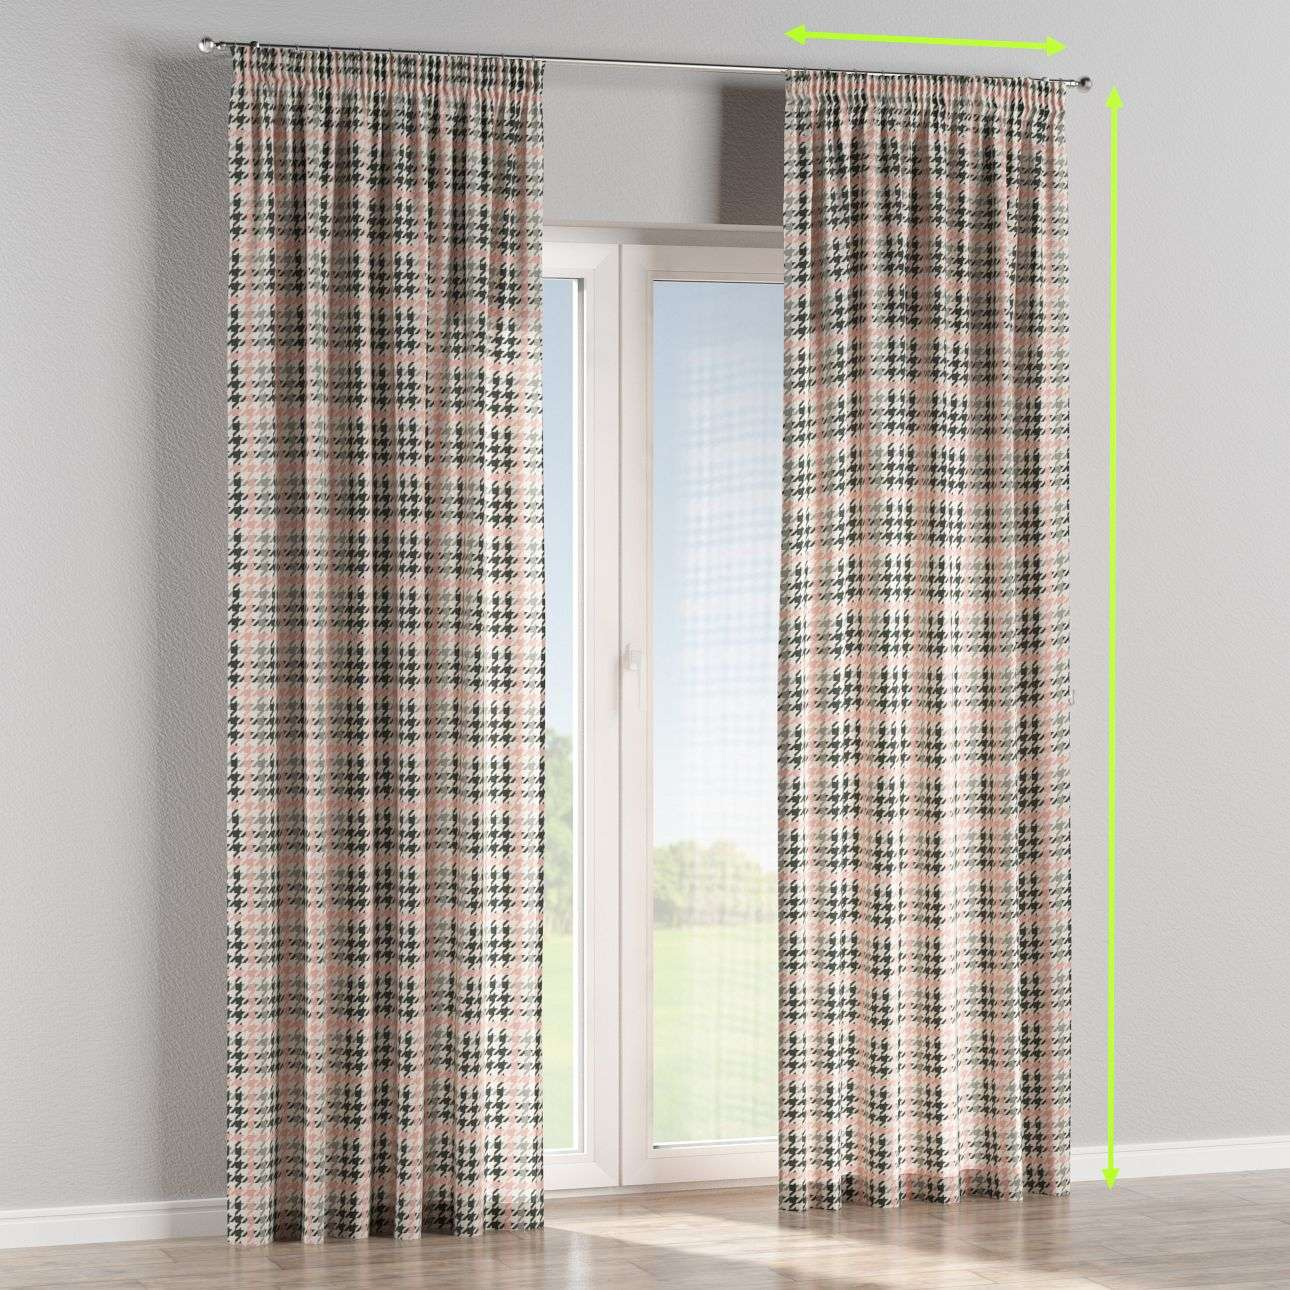 Pencil pleat lined curtains in collection Brooklyn, fabric: 137-75